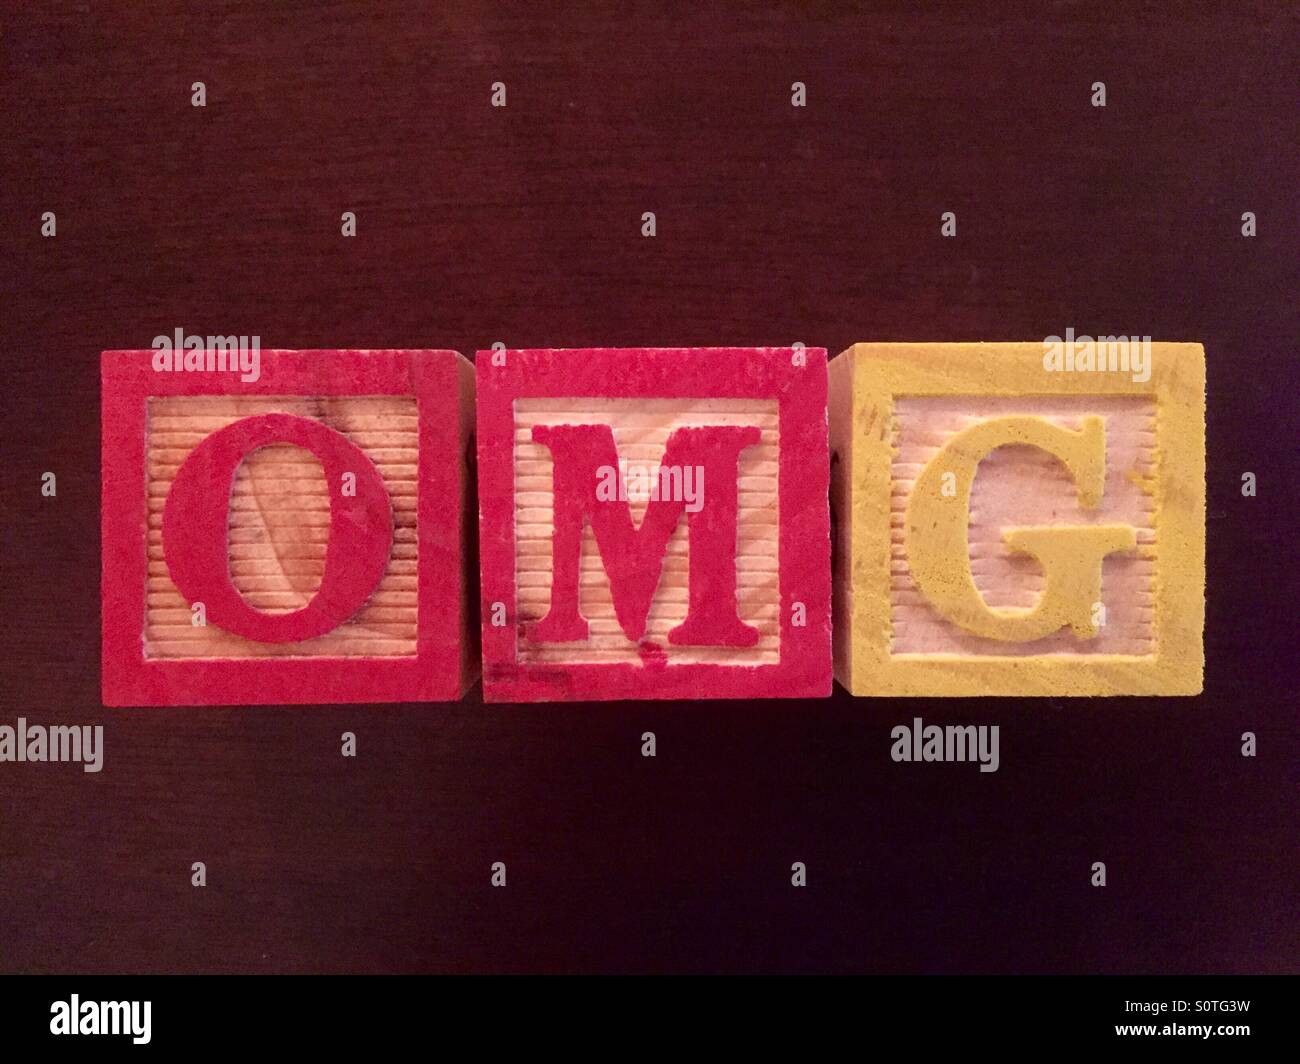 ABC wood block used to spell OMG, 'Oh My God' - Stock Image